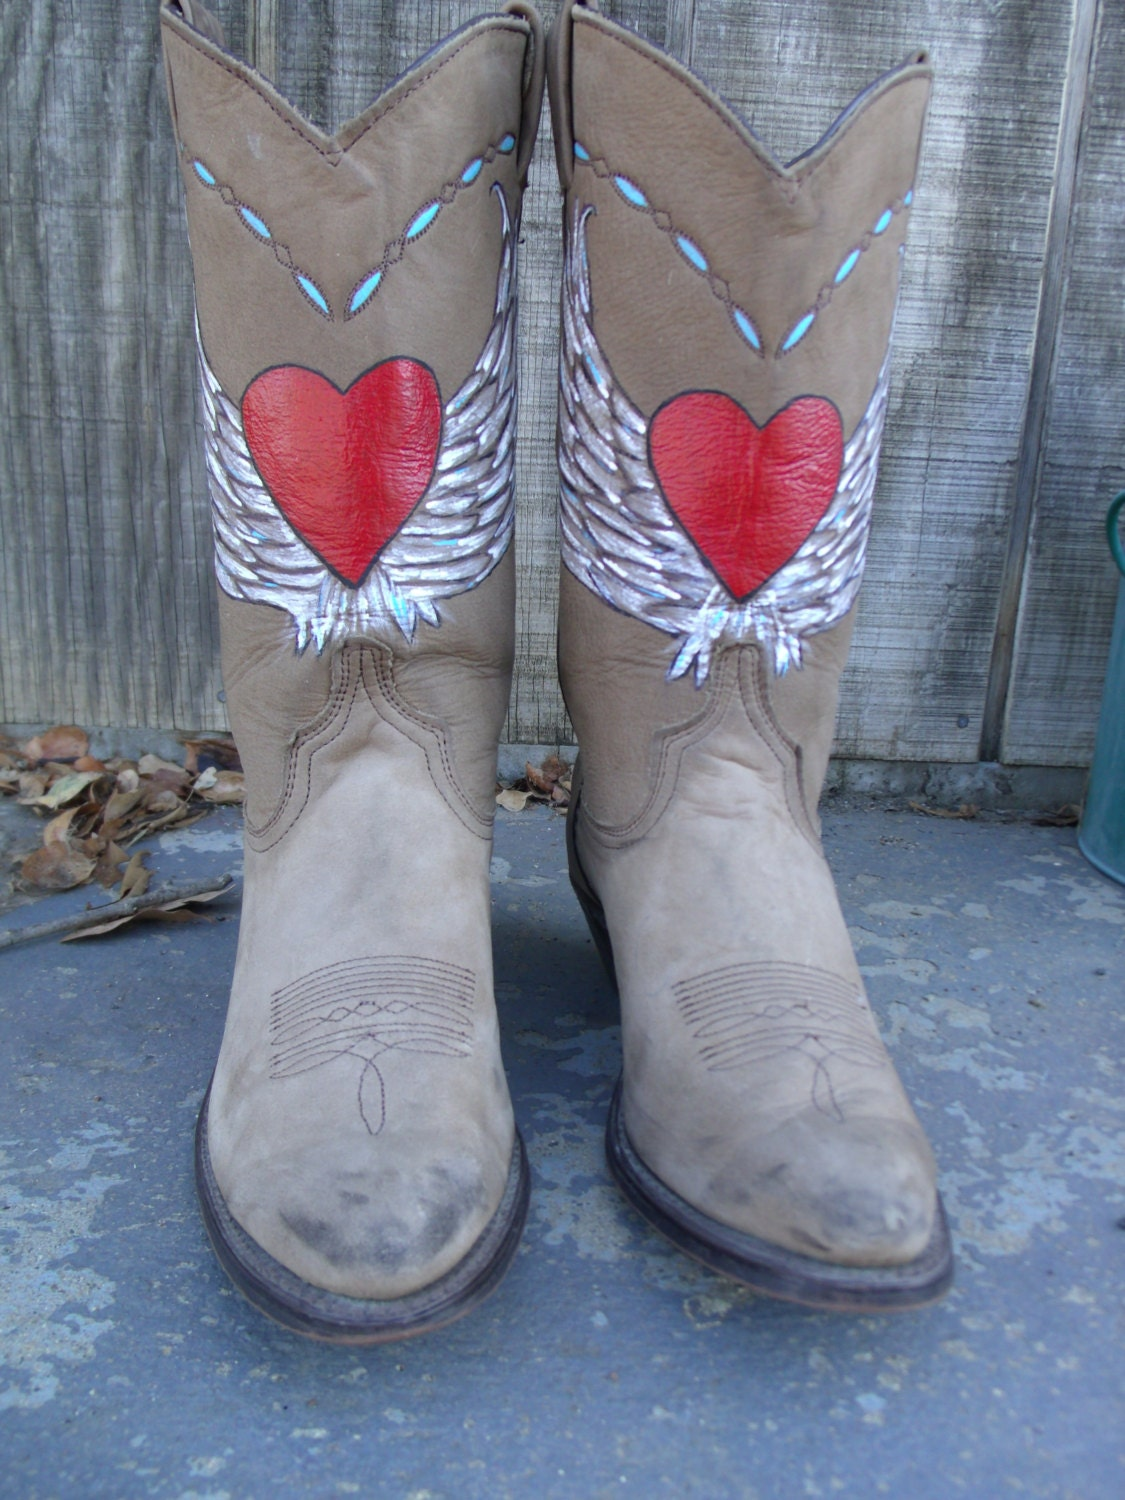 Wonderful Handpainted Shafts And Other Variables, Most From The Womens Side Of The Boot Aisle Looking For A Dramatic Fashion Statement? Wear Your Boots With A Long Blazer Over Tights Or Stirrup Pants Fashion Cowboy Boots In Pink And Purple